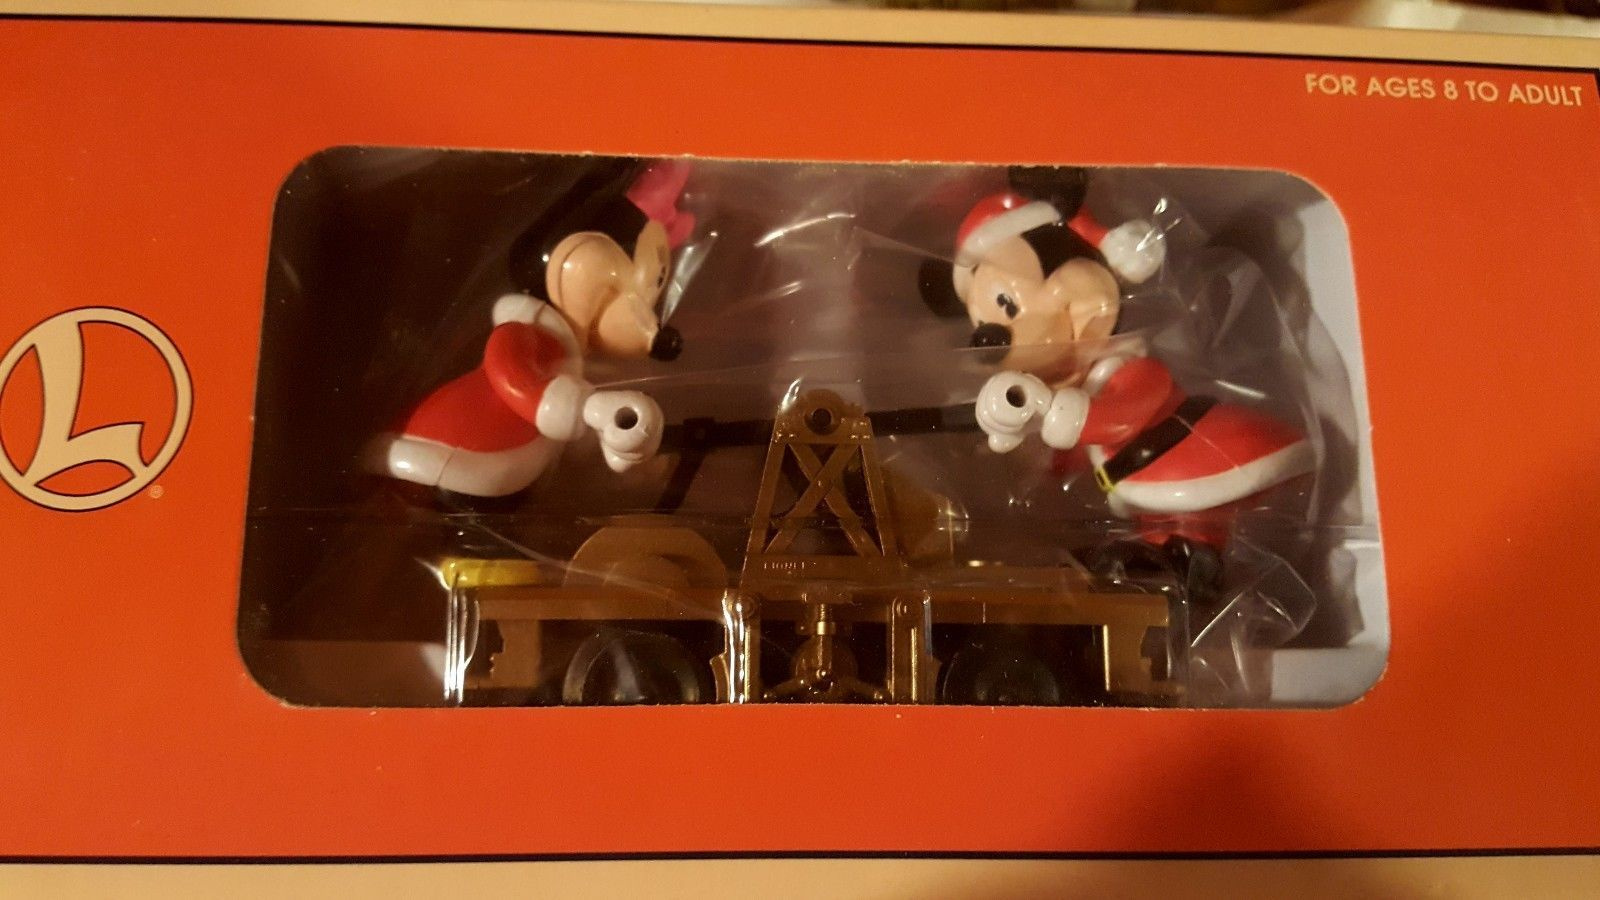 O) LIONEL Mickey & Minnie Mouse Hand Pumper Gandy Dancer Car